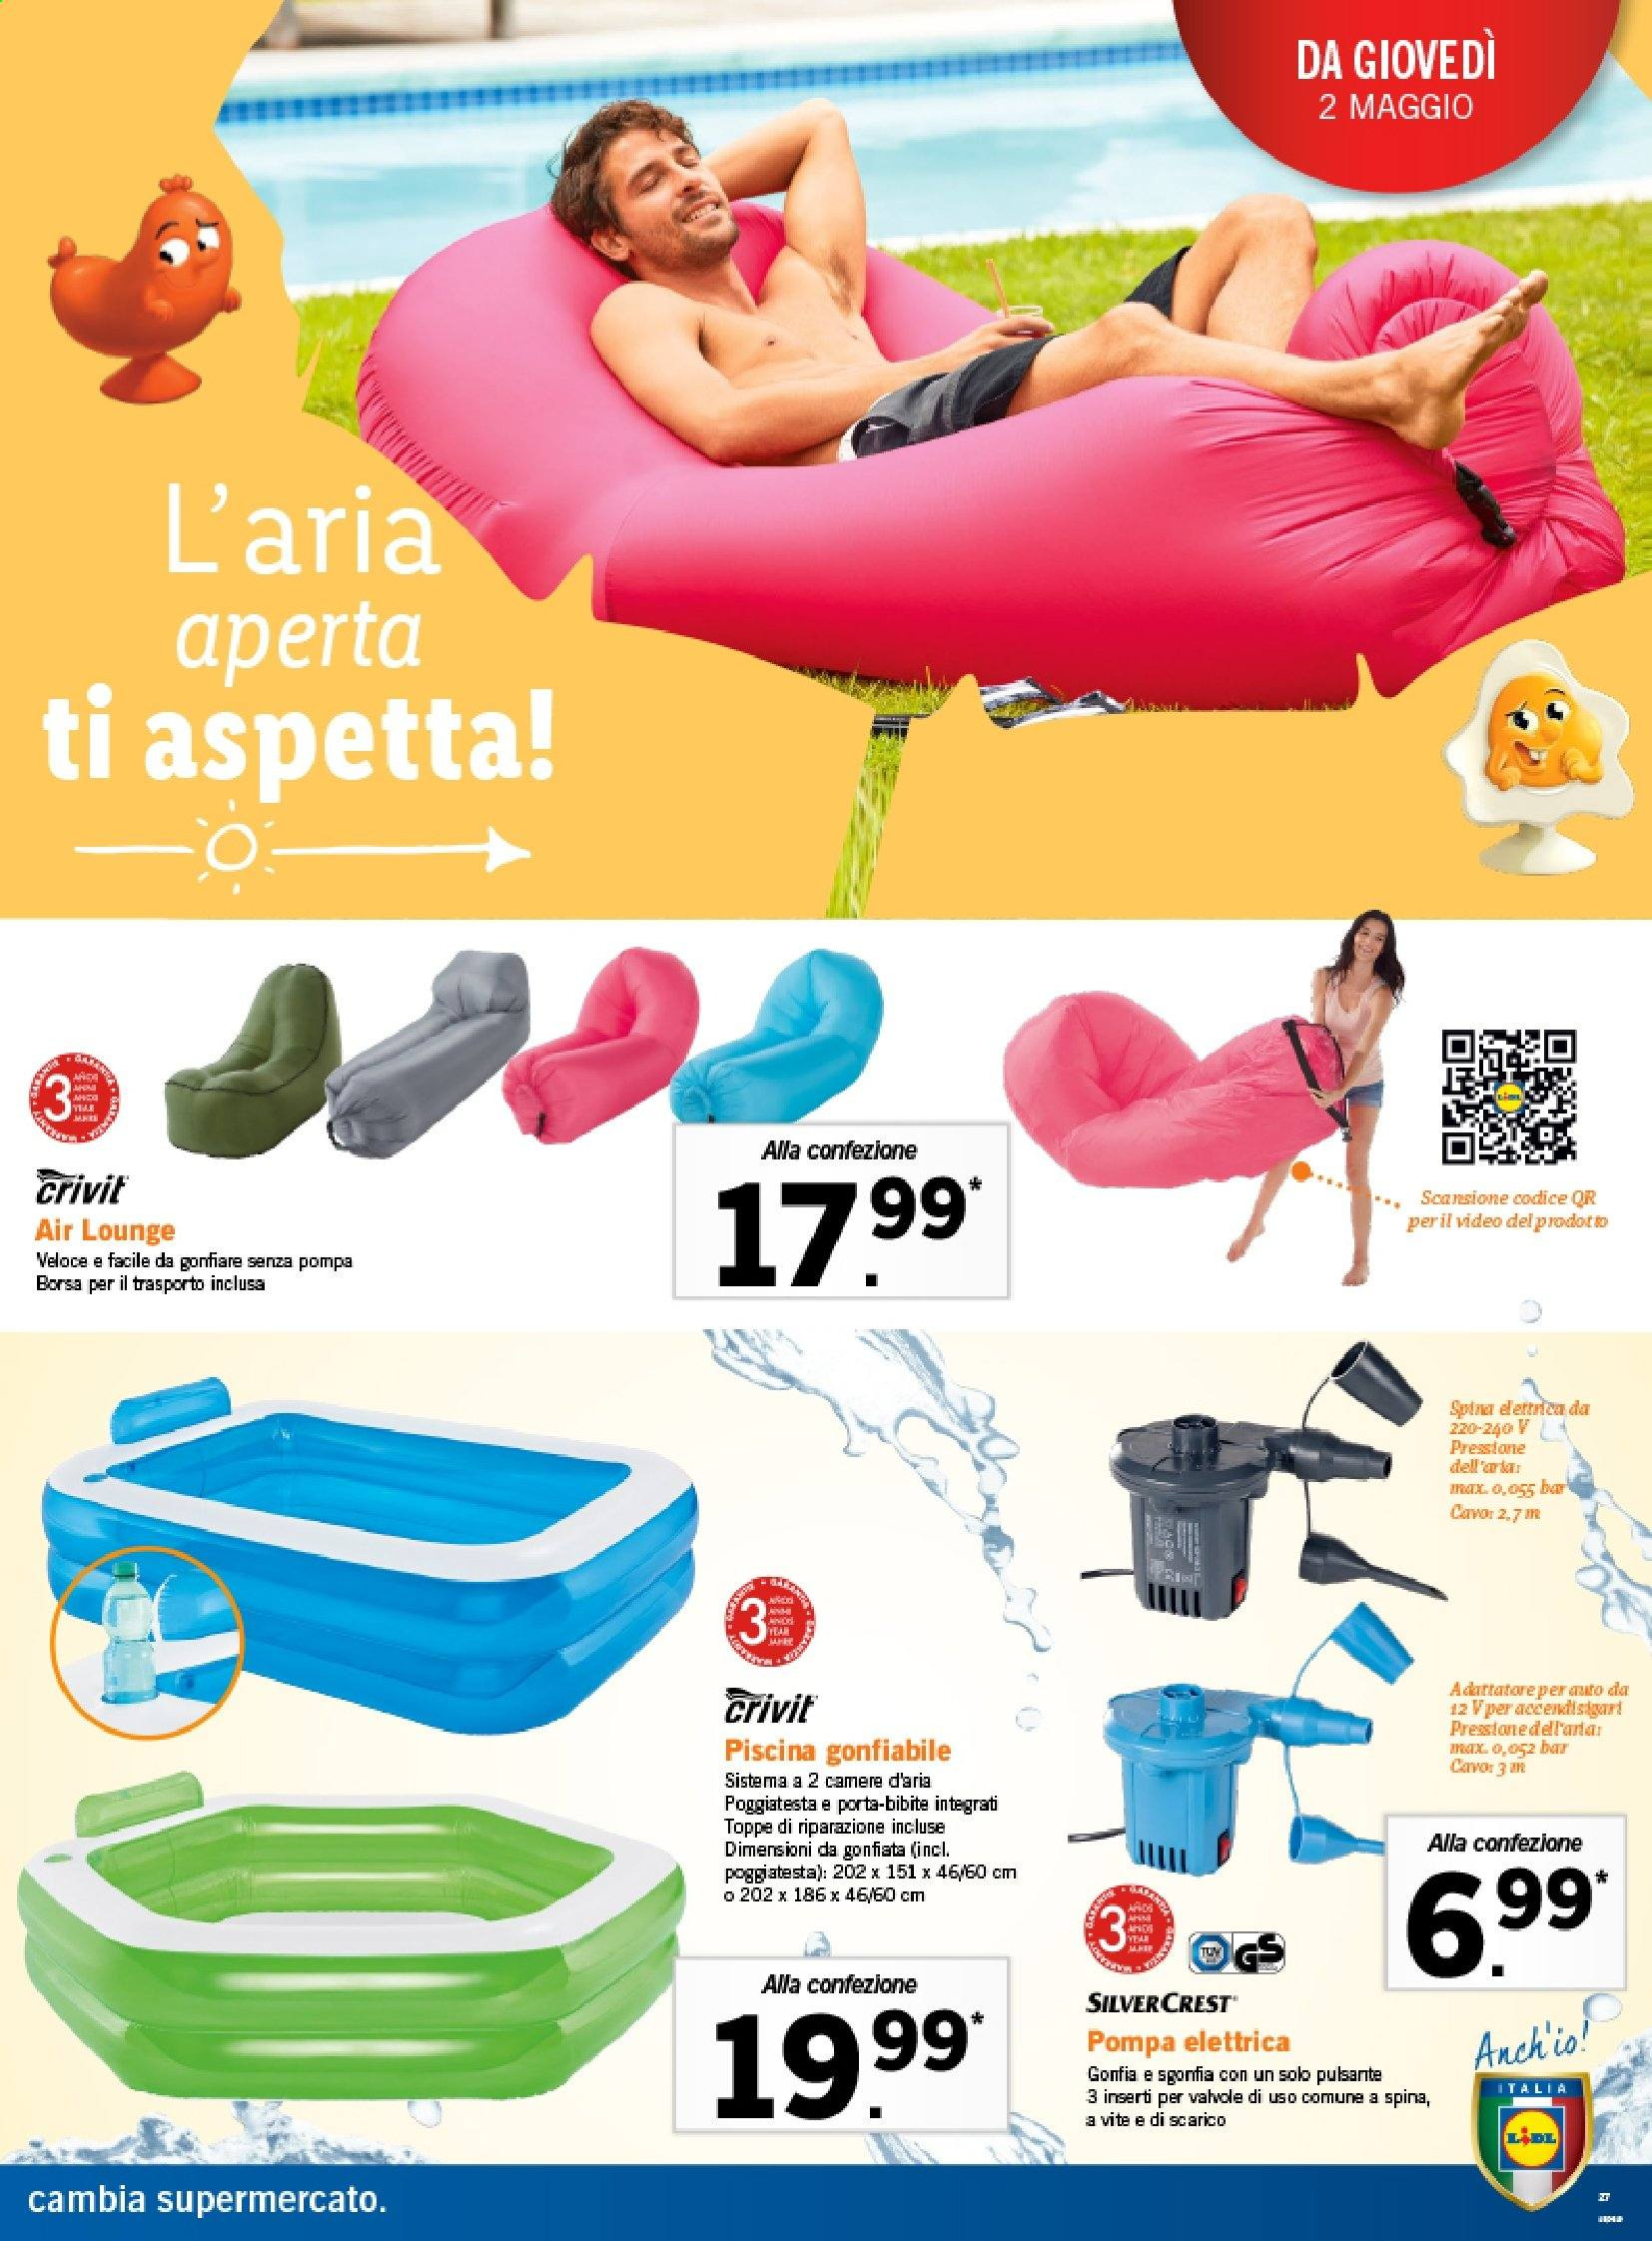 Lidl air lounger Our Products